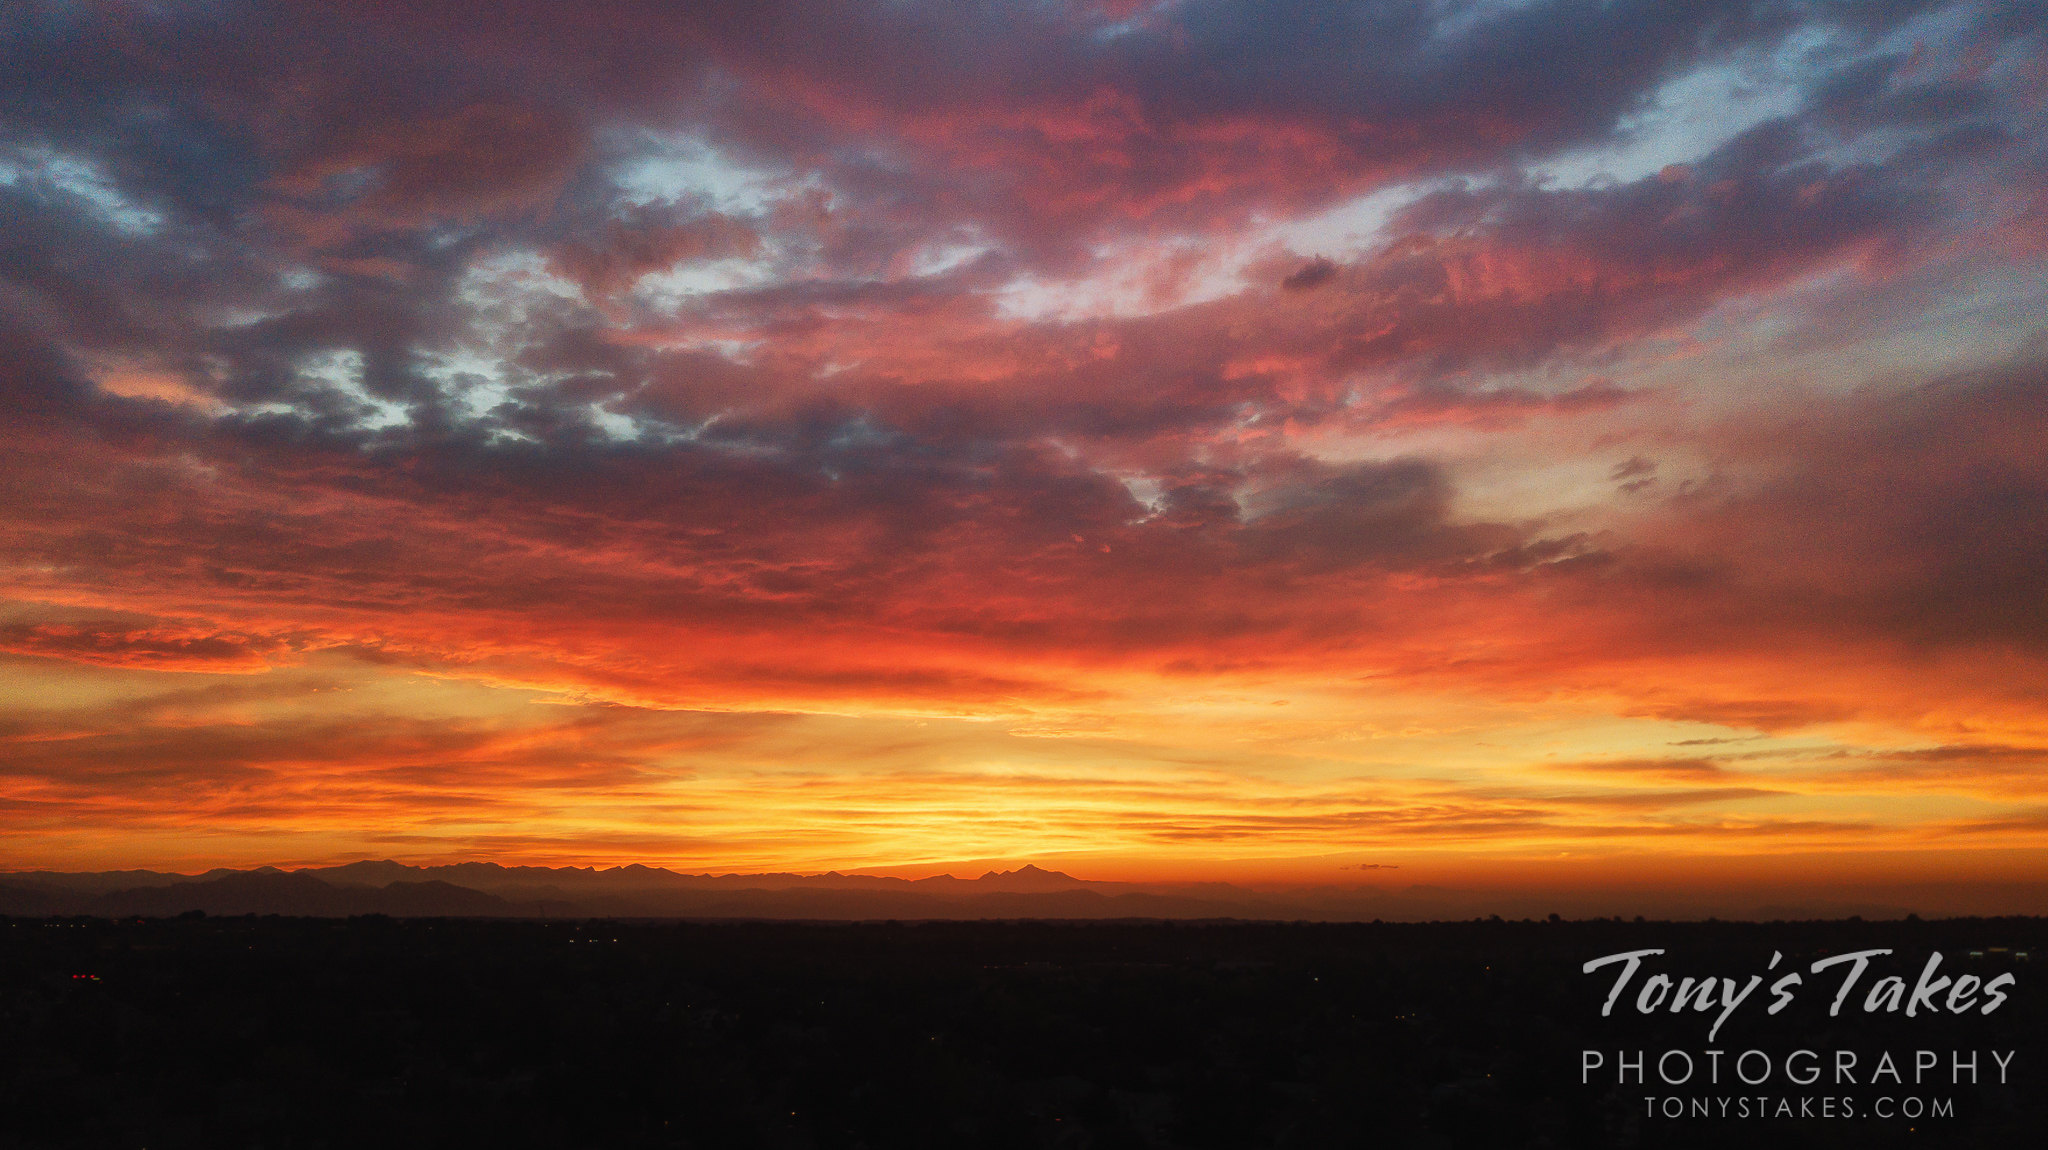 A beautiful summer sunset as seen from a drone over Thornton, Colorado. (© Tony's Takes)